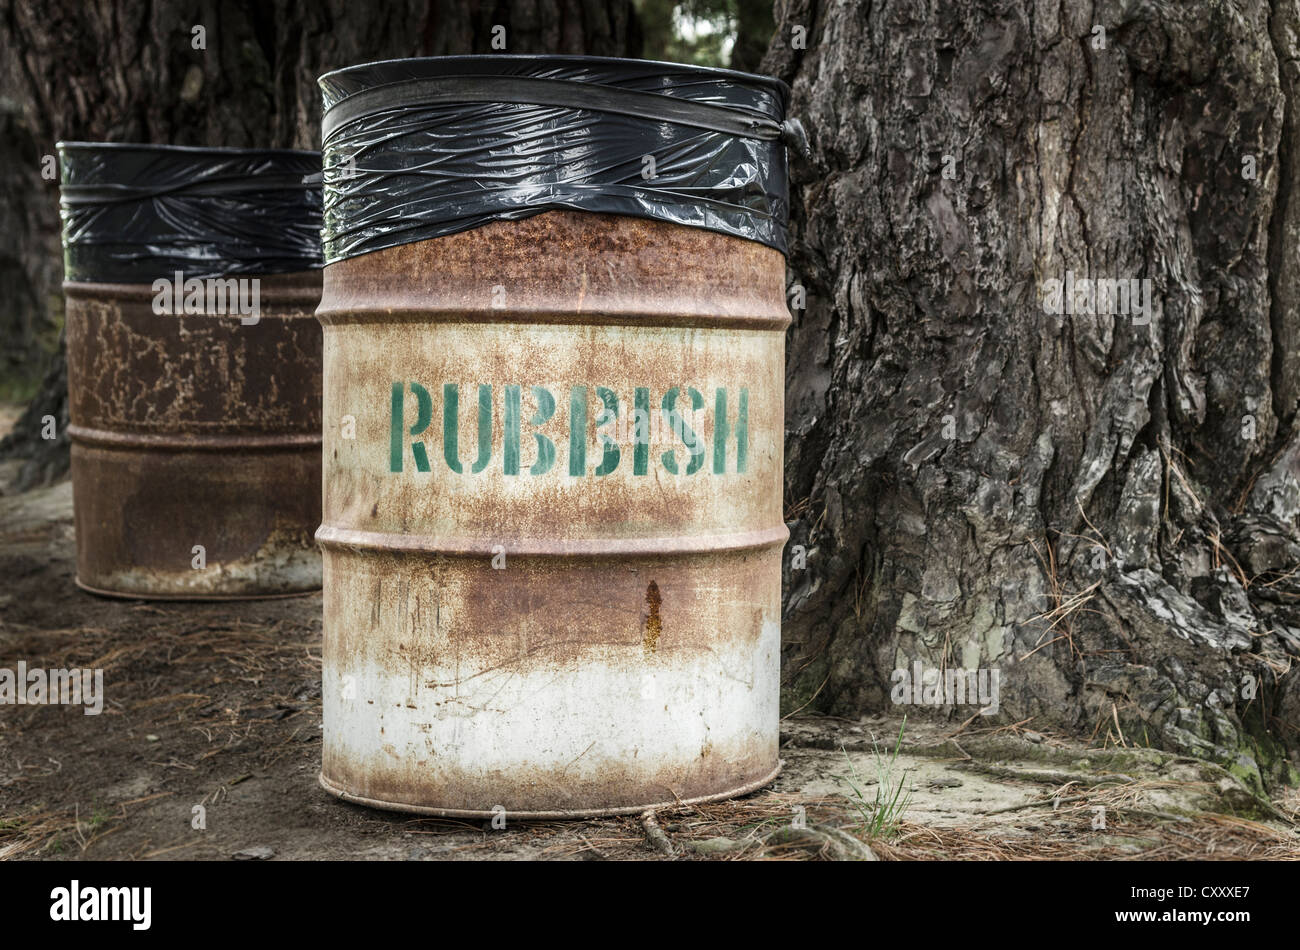 Rusty tin rubbish bin with word 'rubbish' next to a gnarled tree, New Zealand - Stock Image